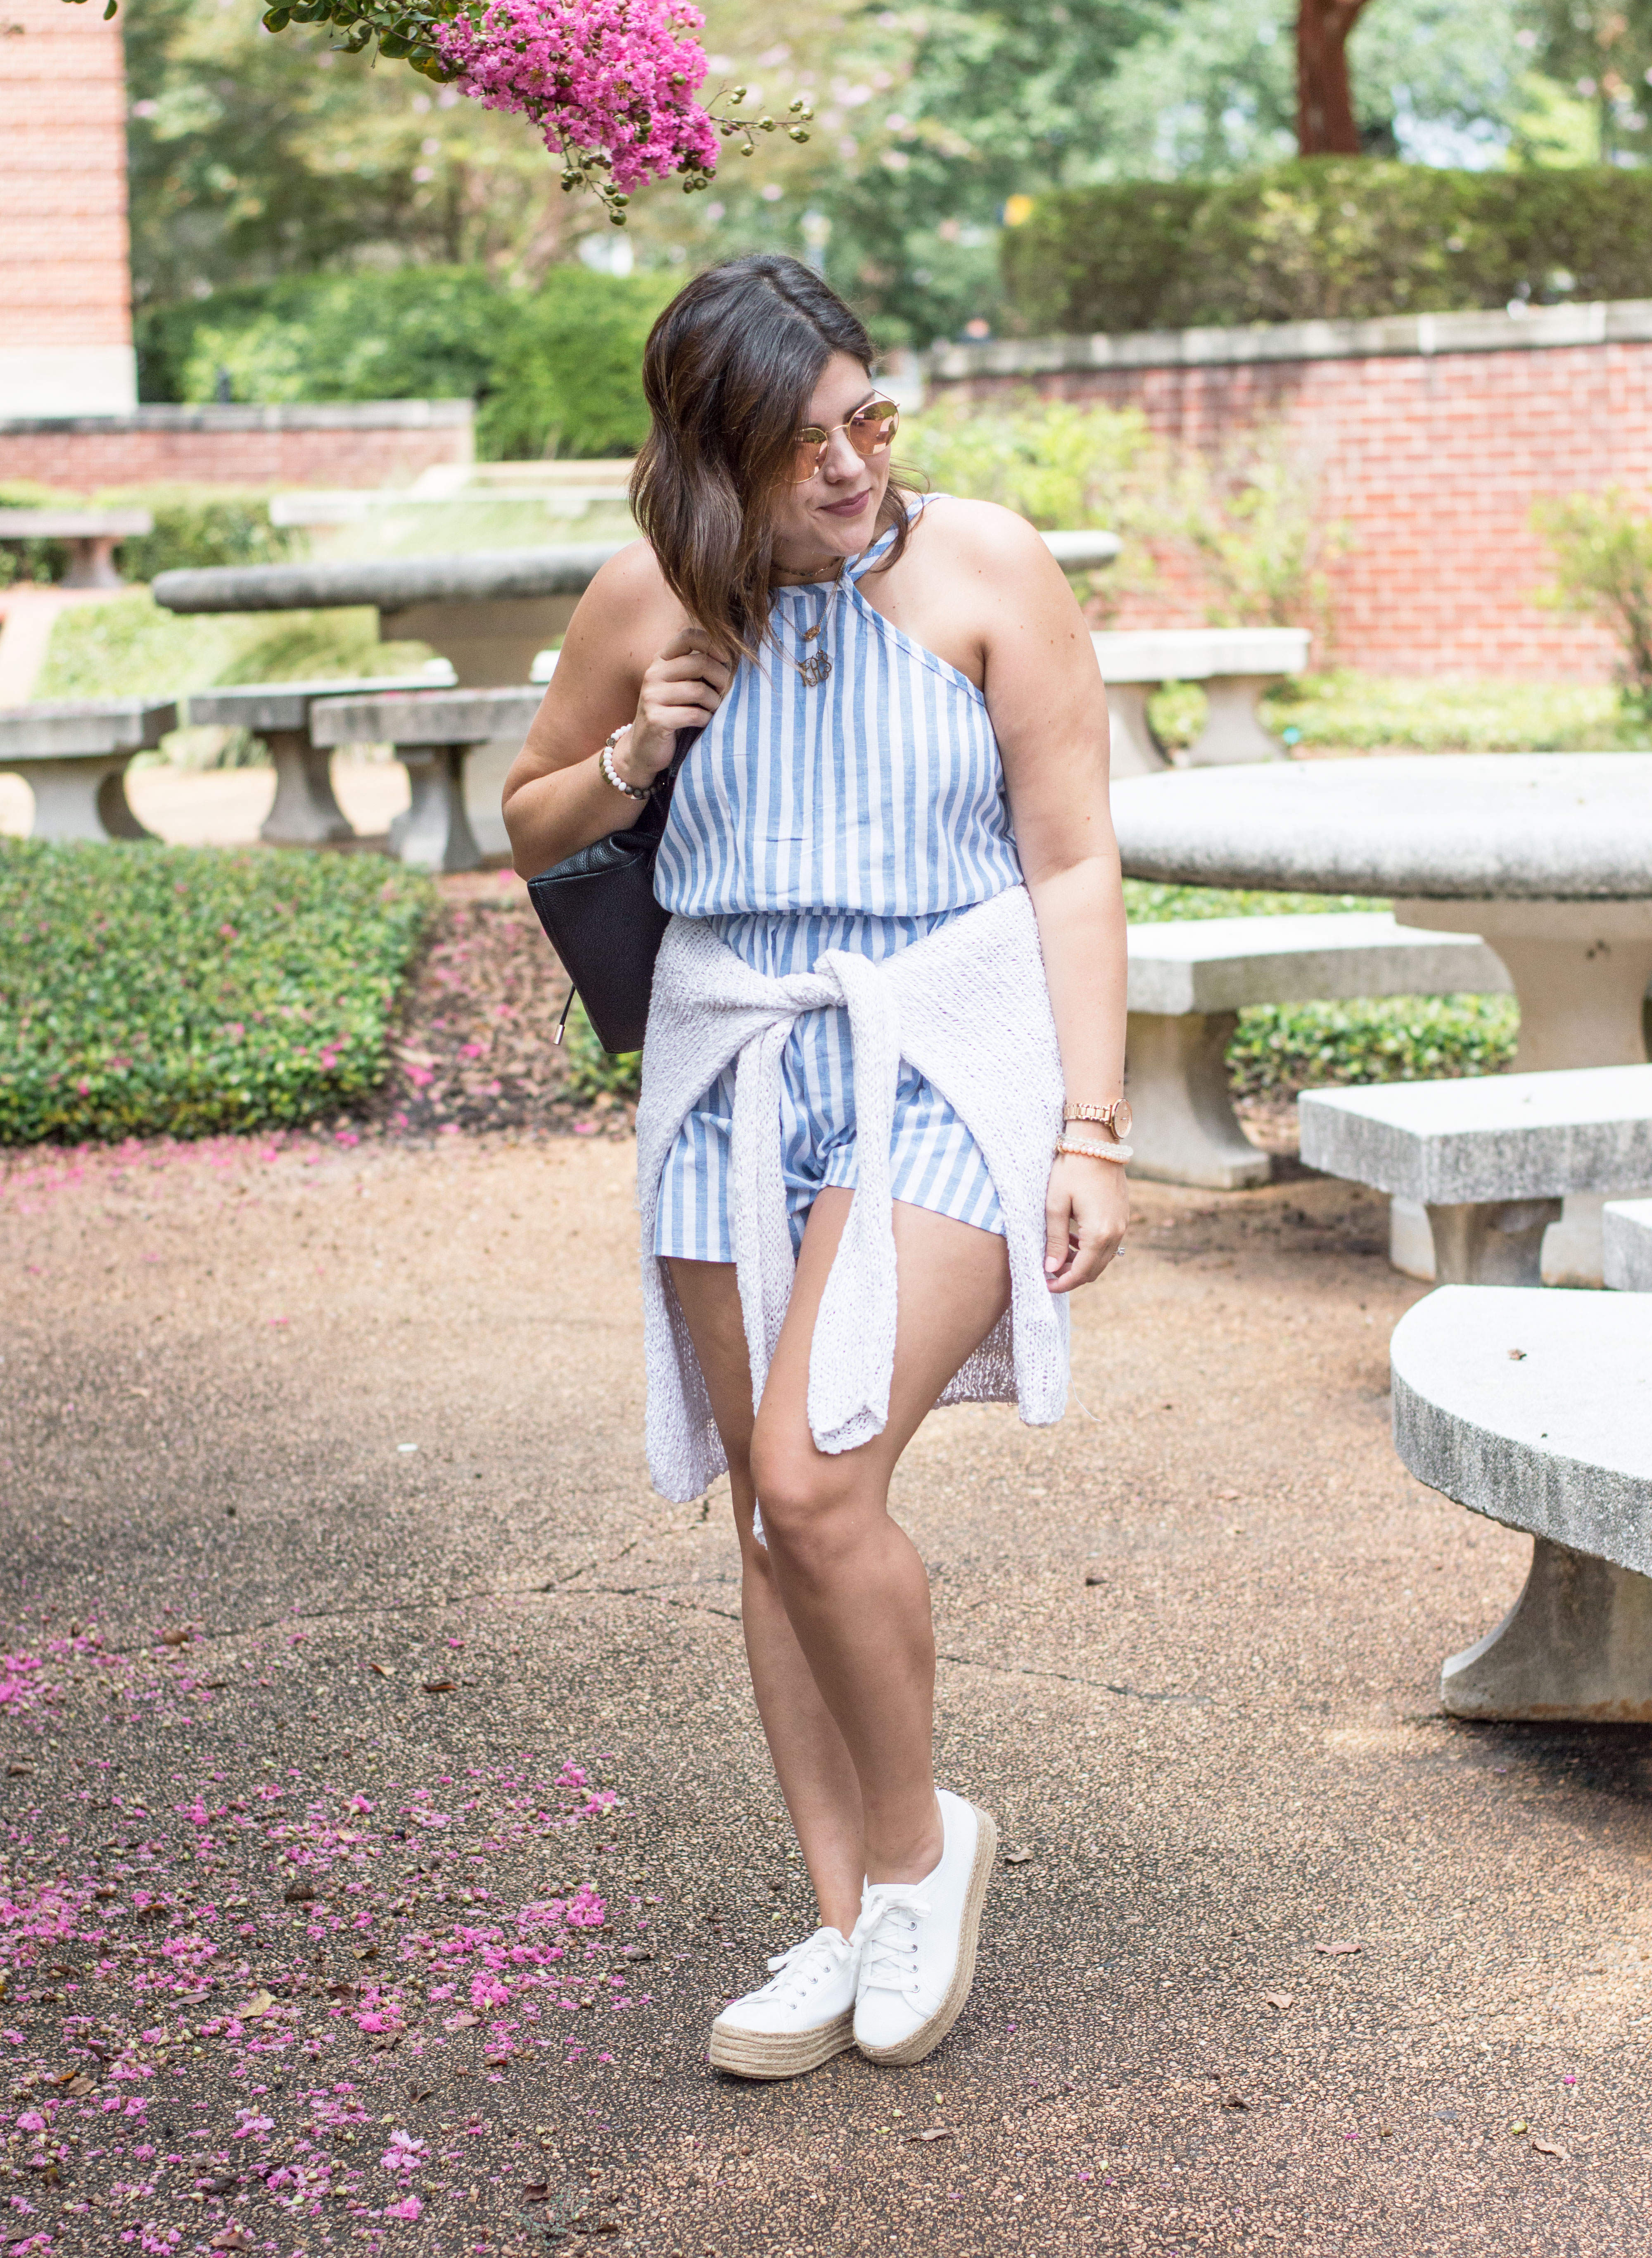 cddcf6d10fc2 So keep reading for my tips on how to wear your Summer rompers into Fall!